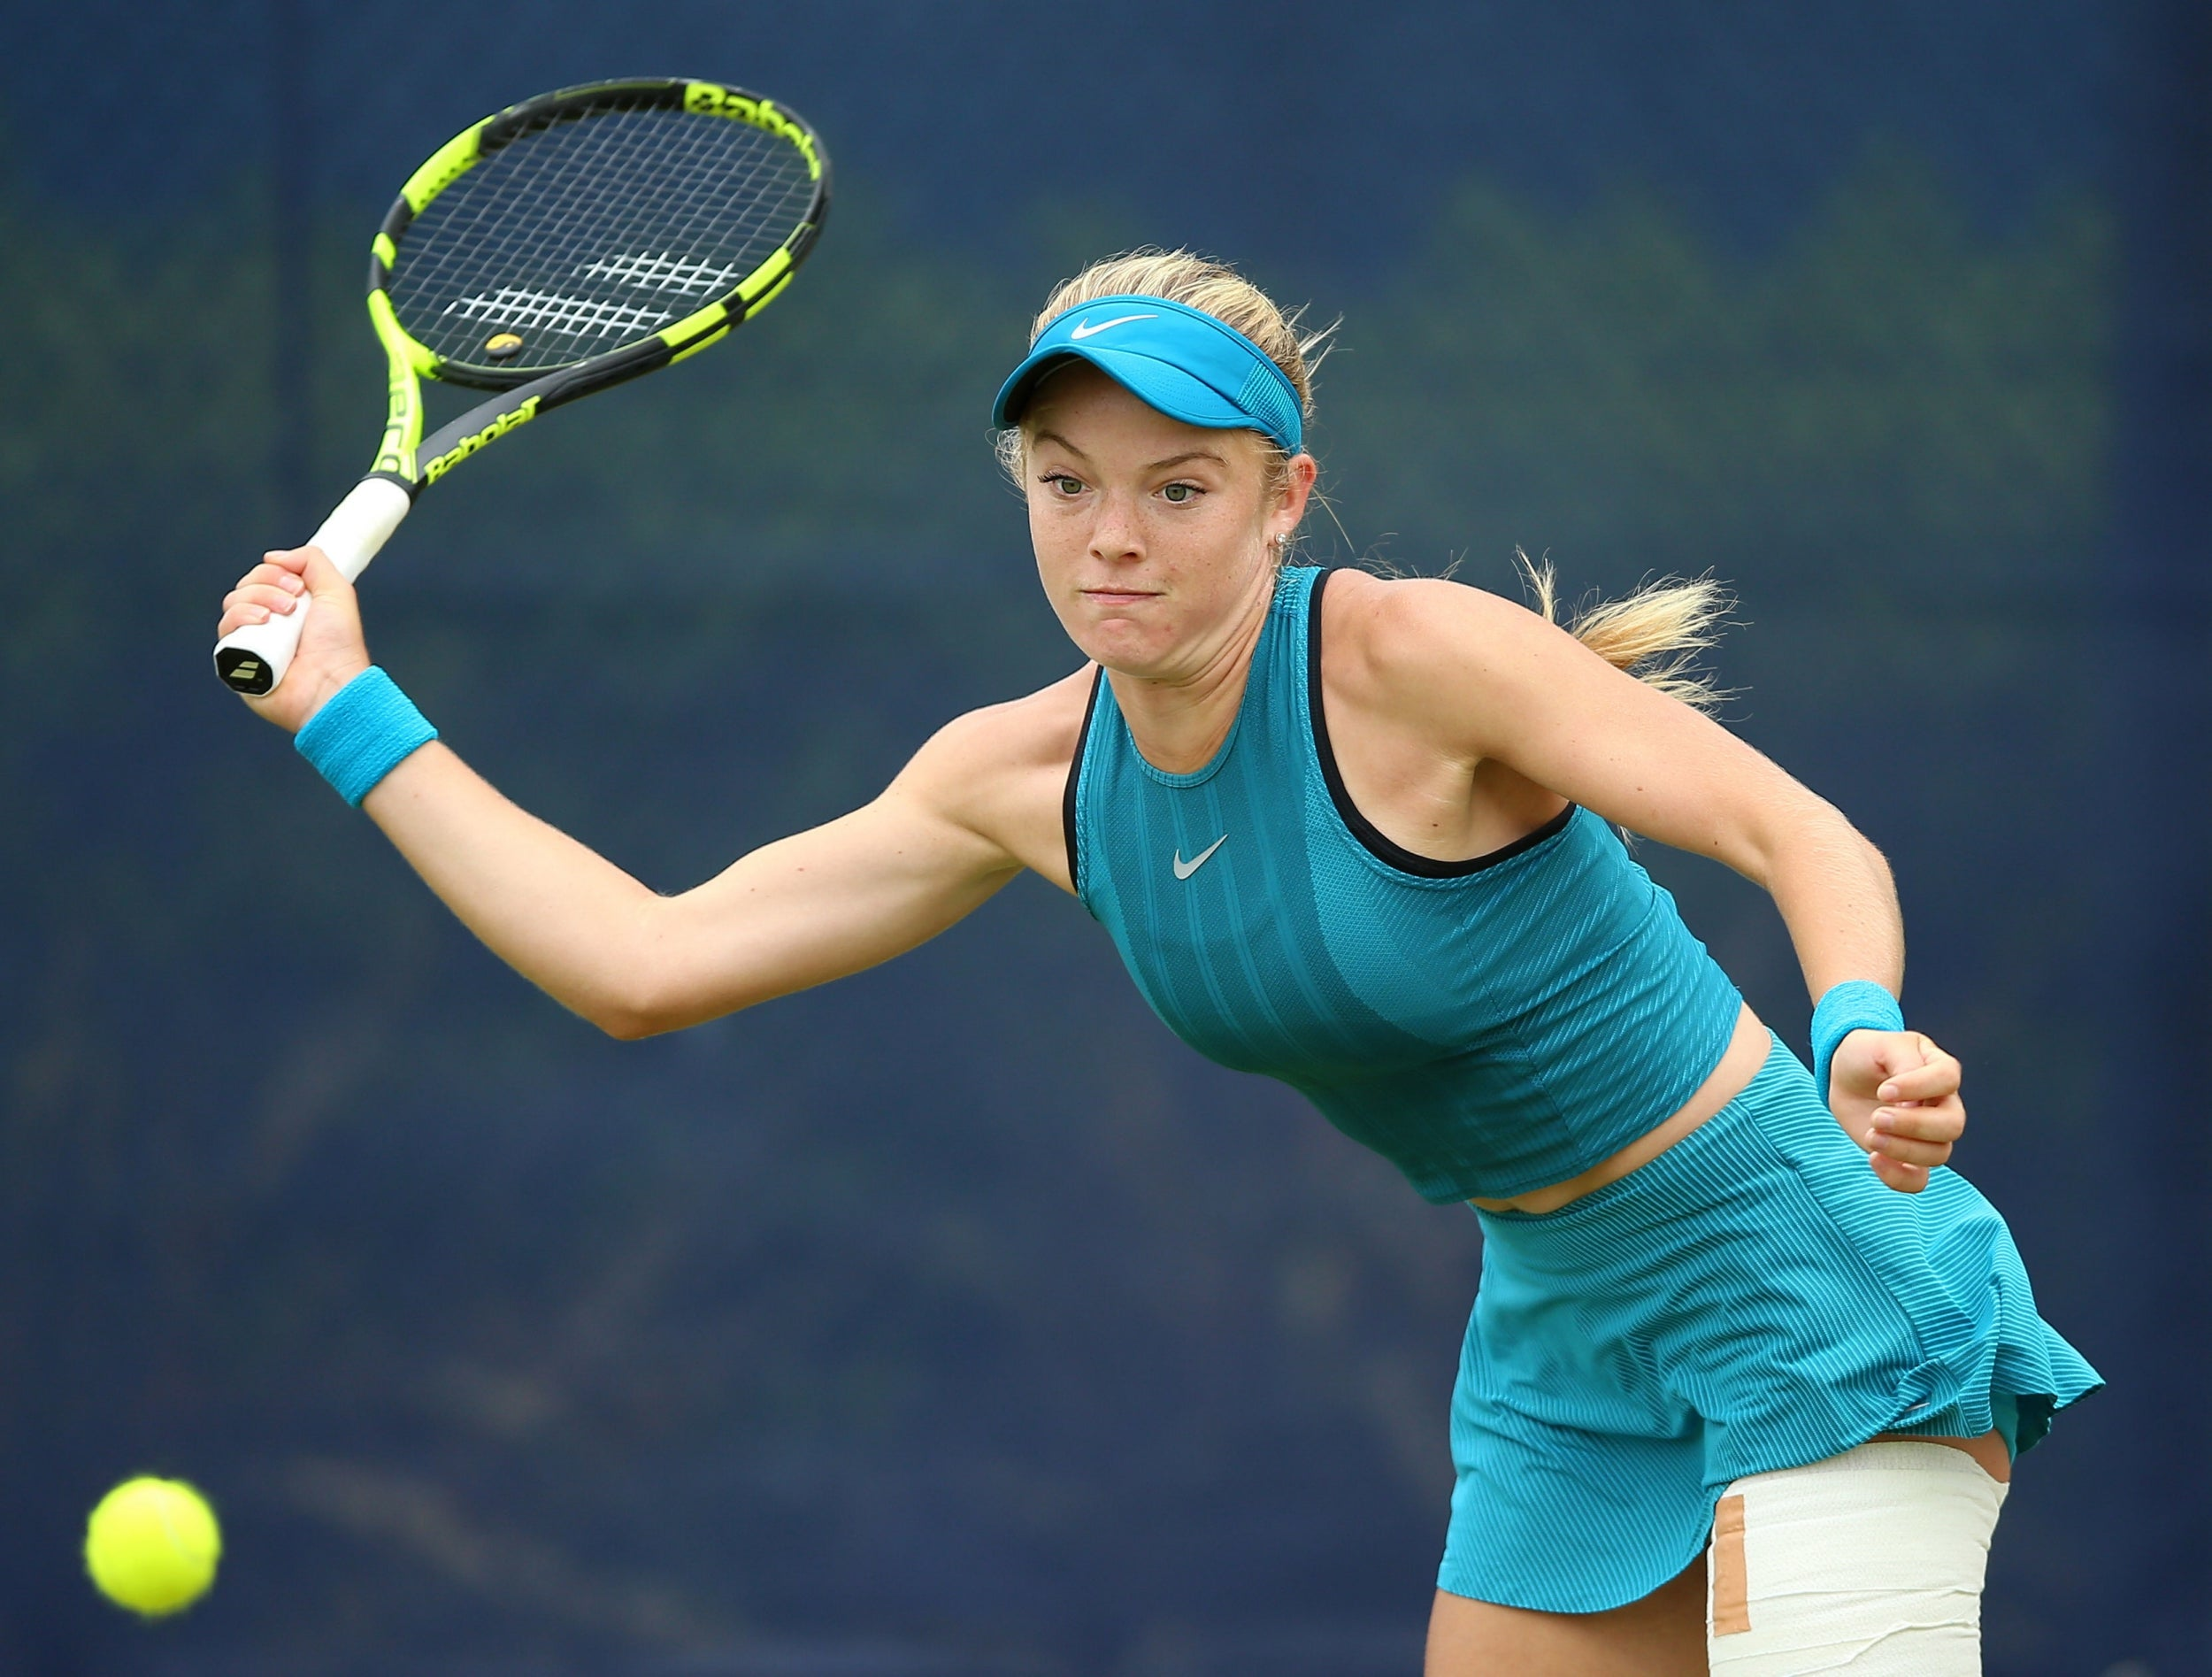 French Open 2019: Katie Swan opens up on mental health struggles after qualifying defeat at Roland Garros